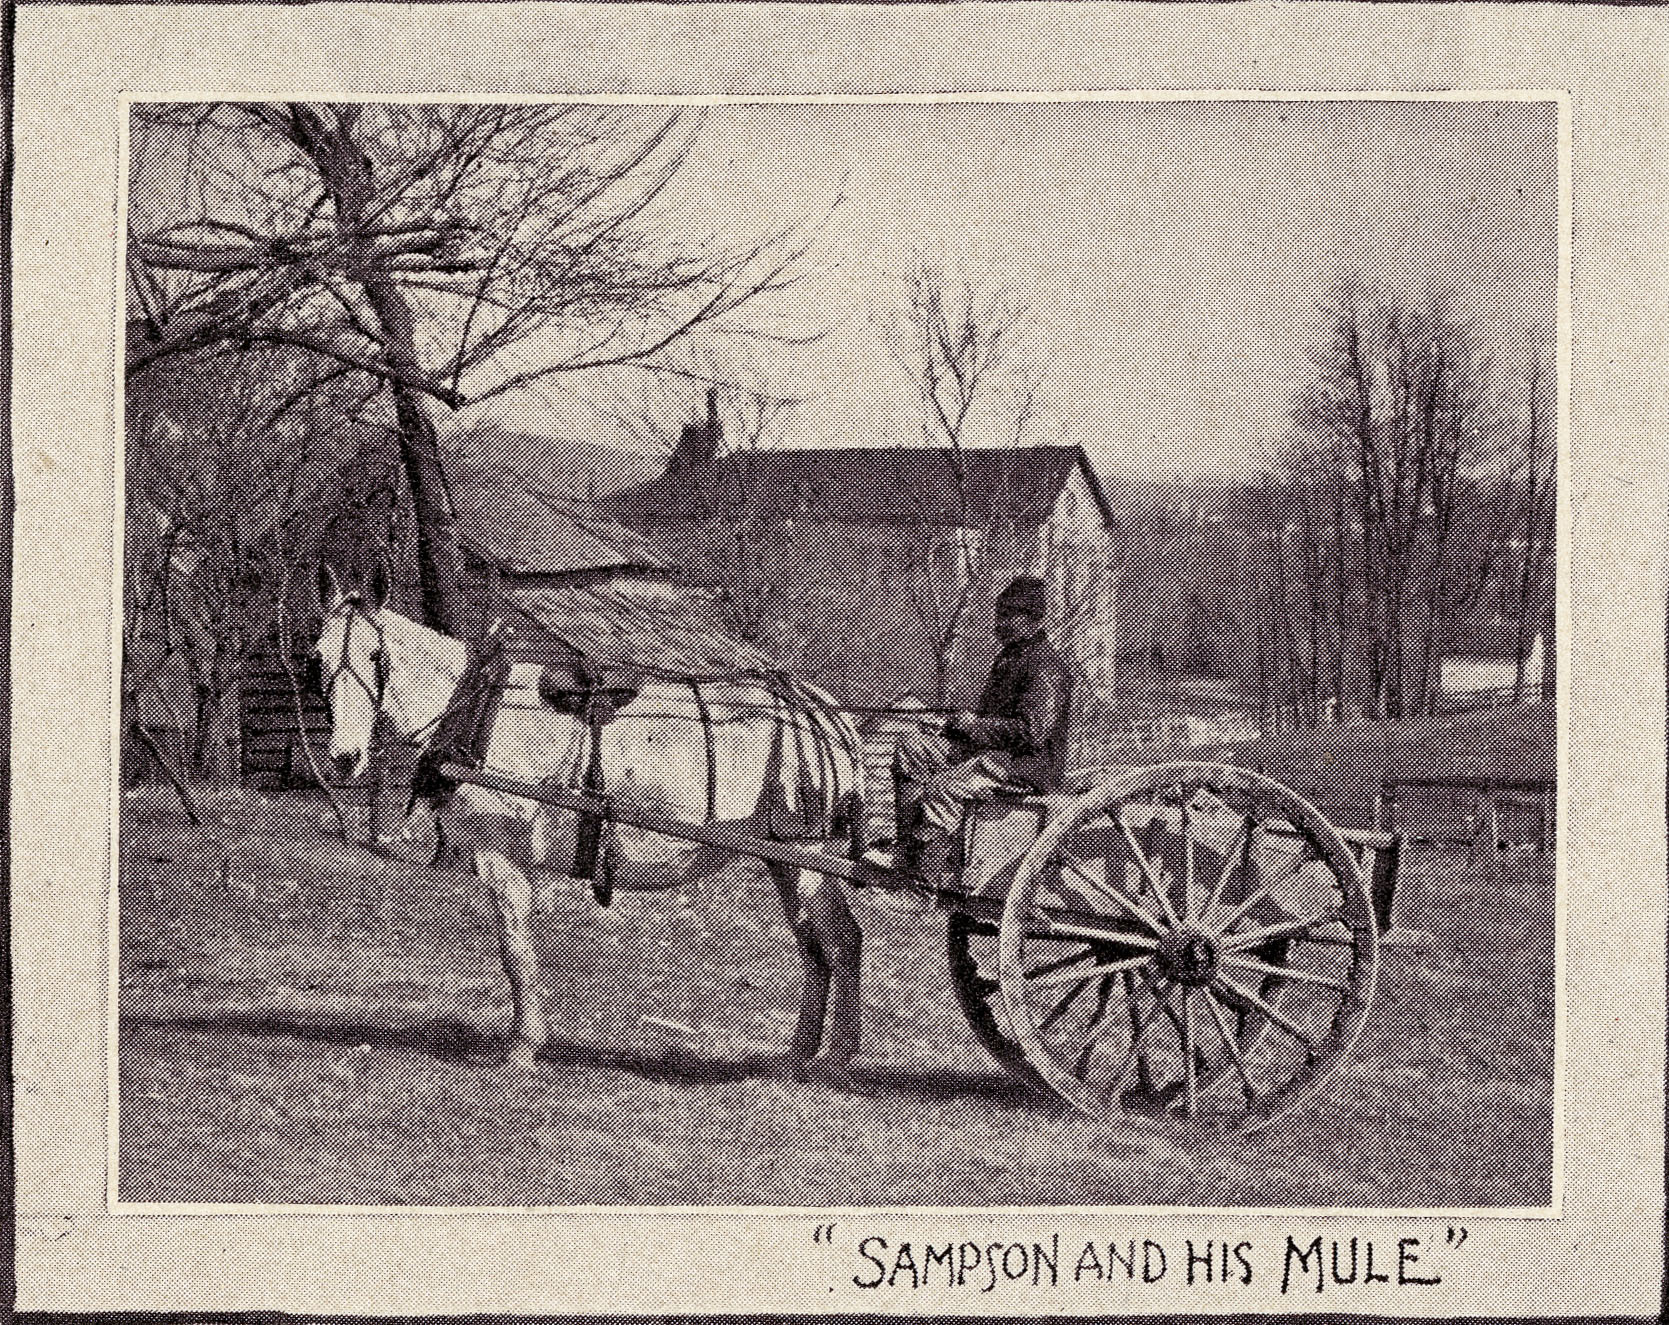 http://spec.lib.vt.edu/pickup/Omeka_upload/1899SampsonandhisMule.jpg